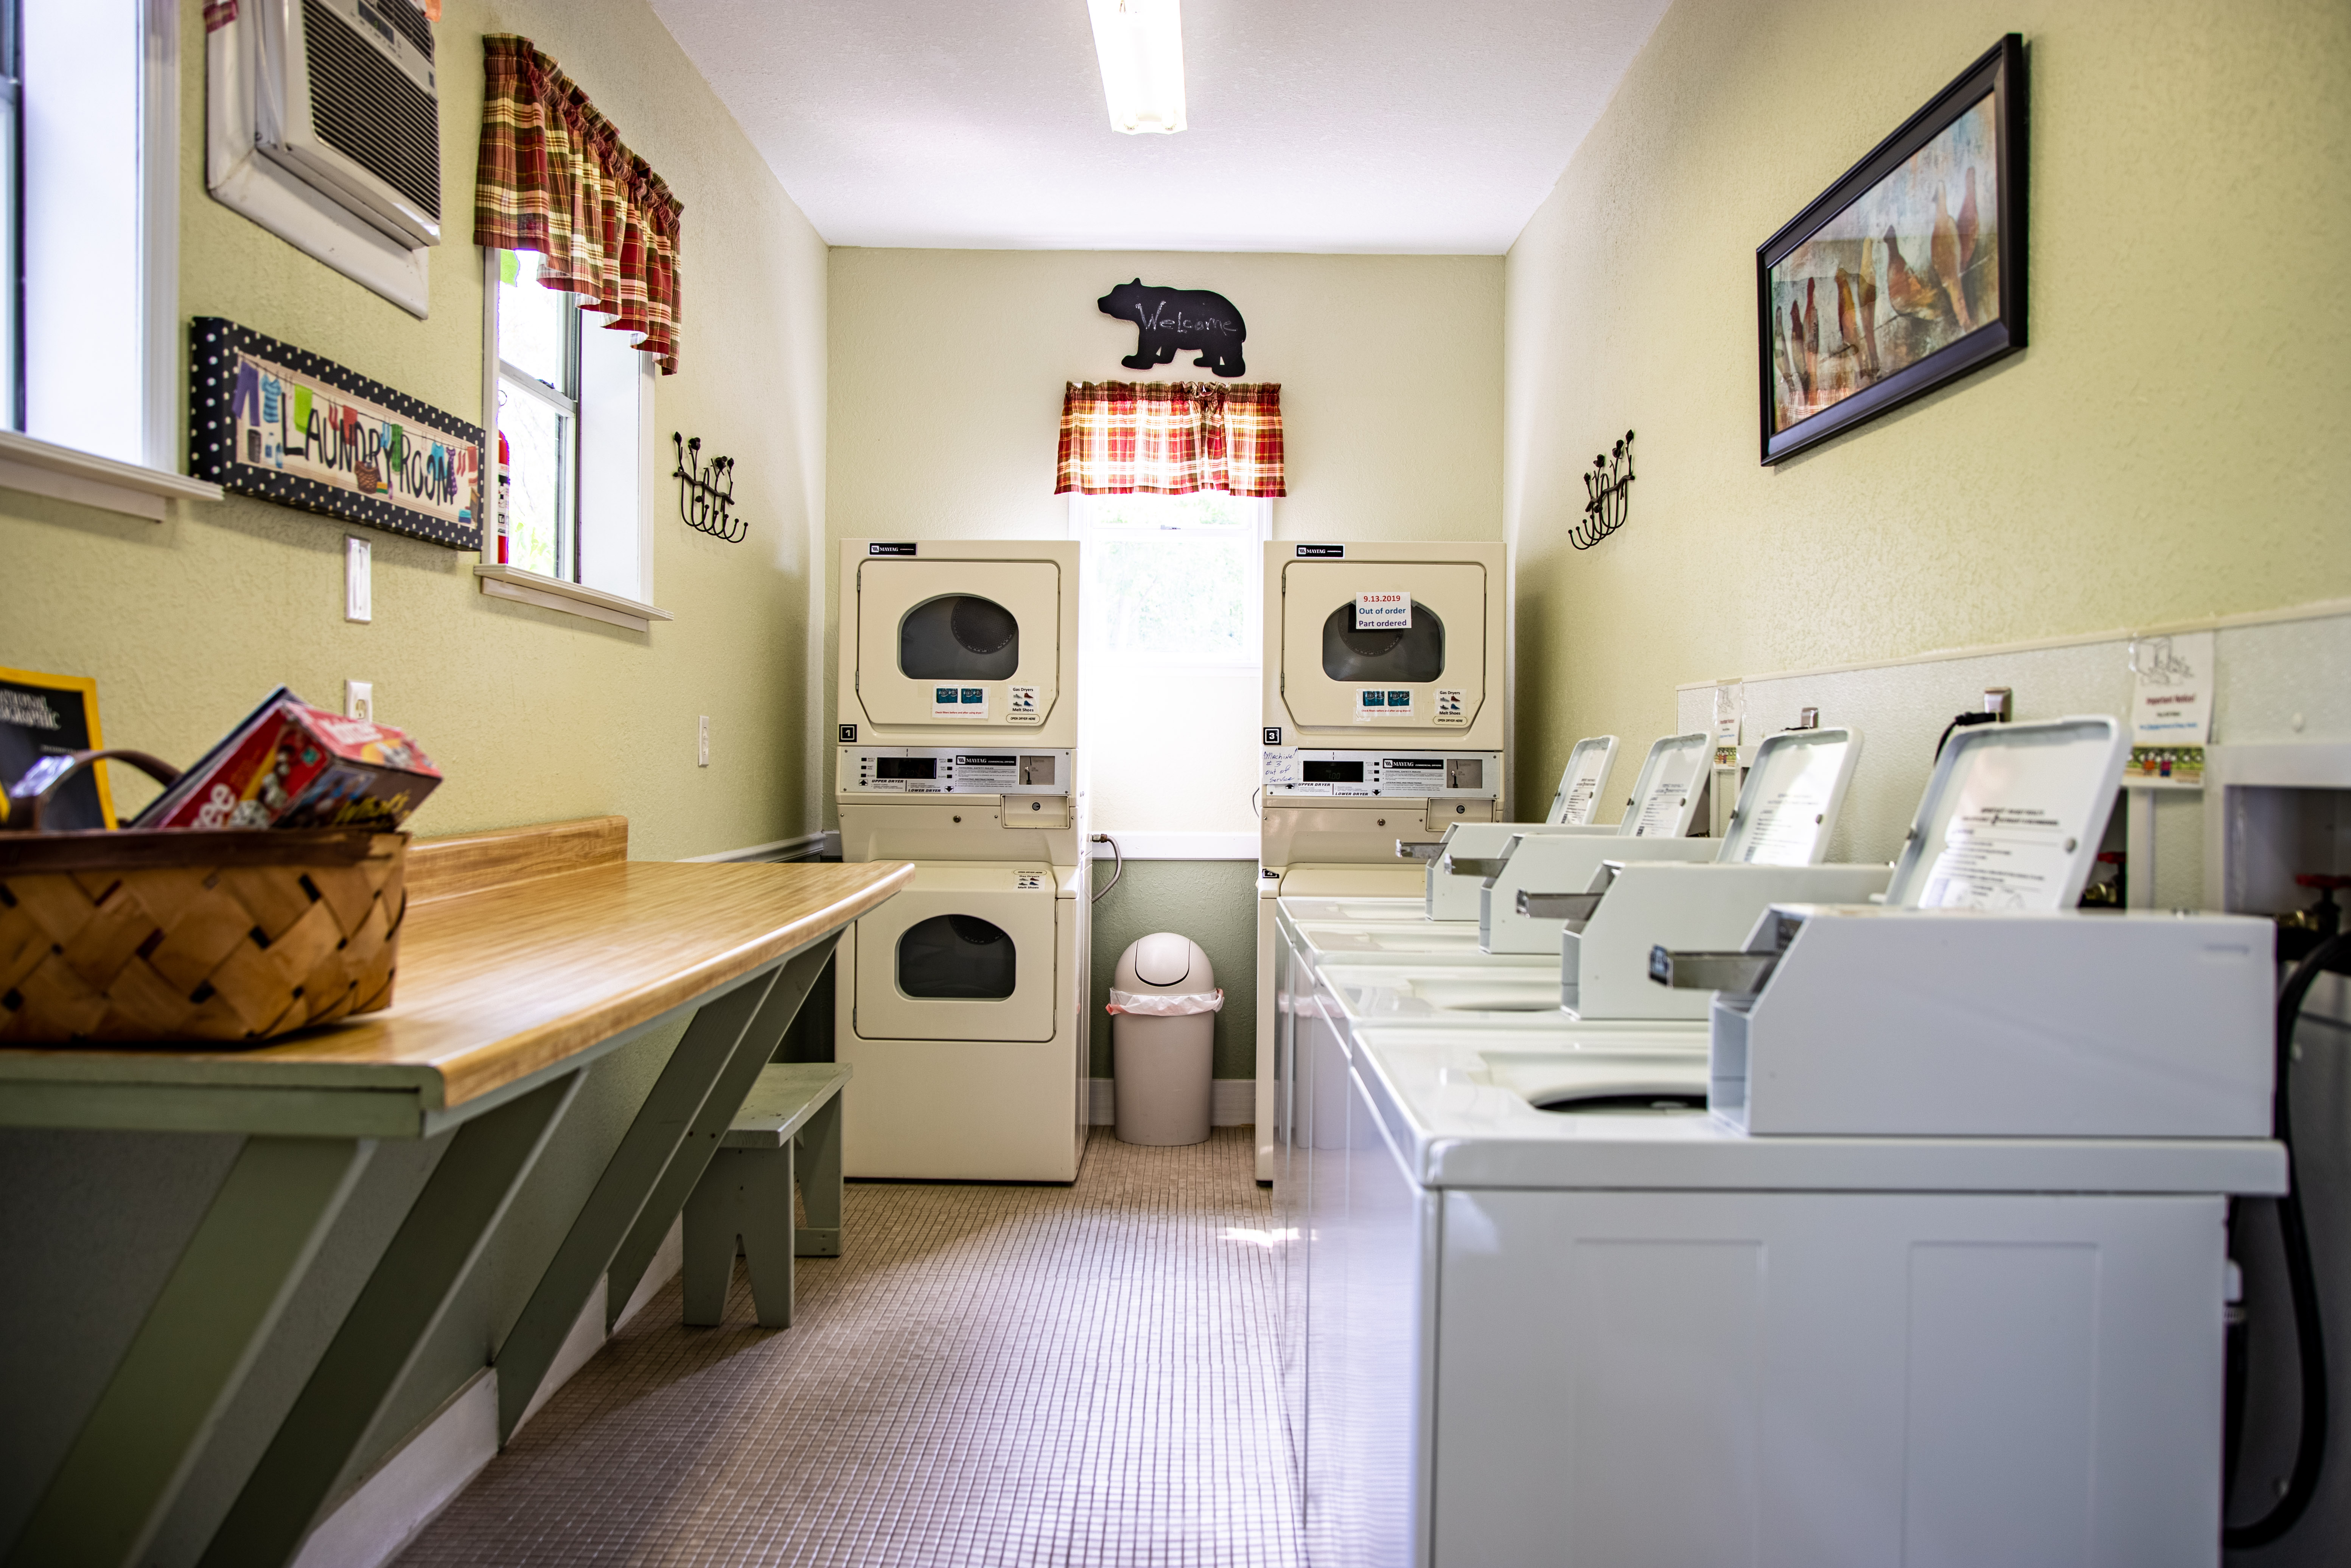 Clean laundry room.